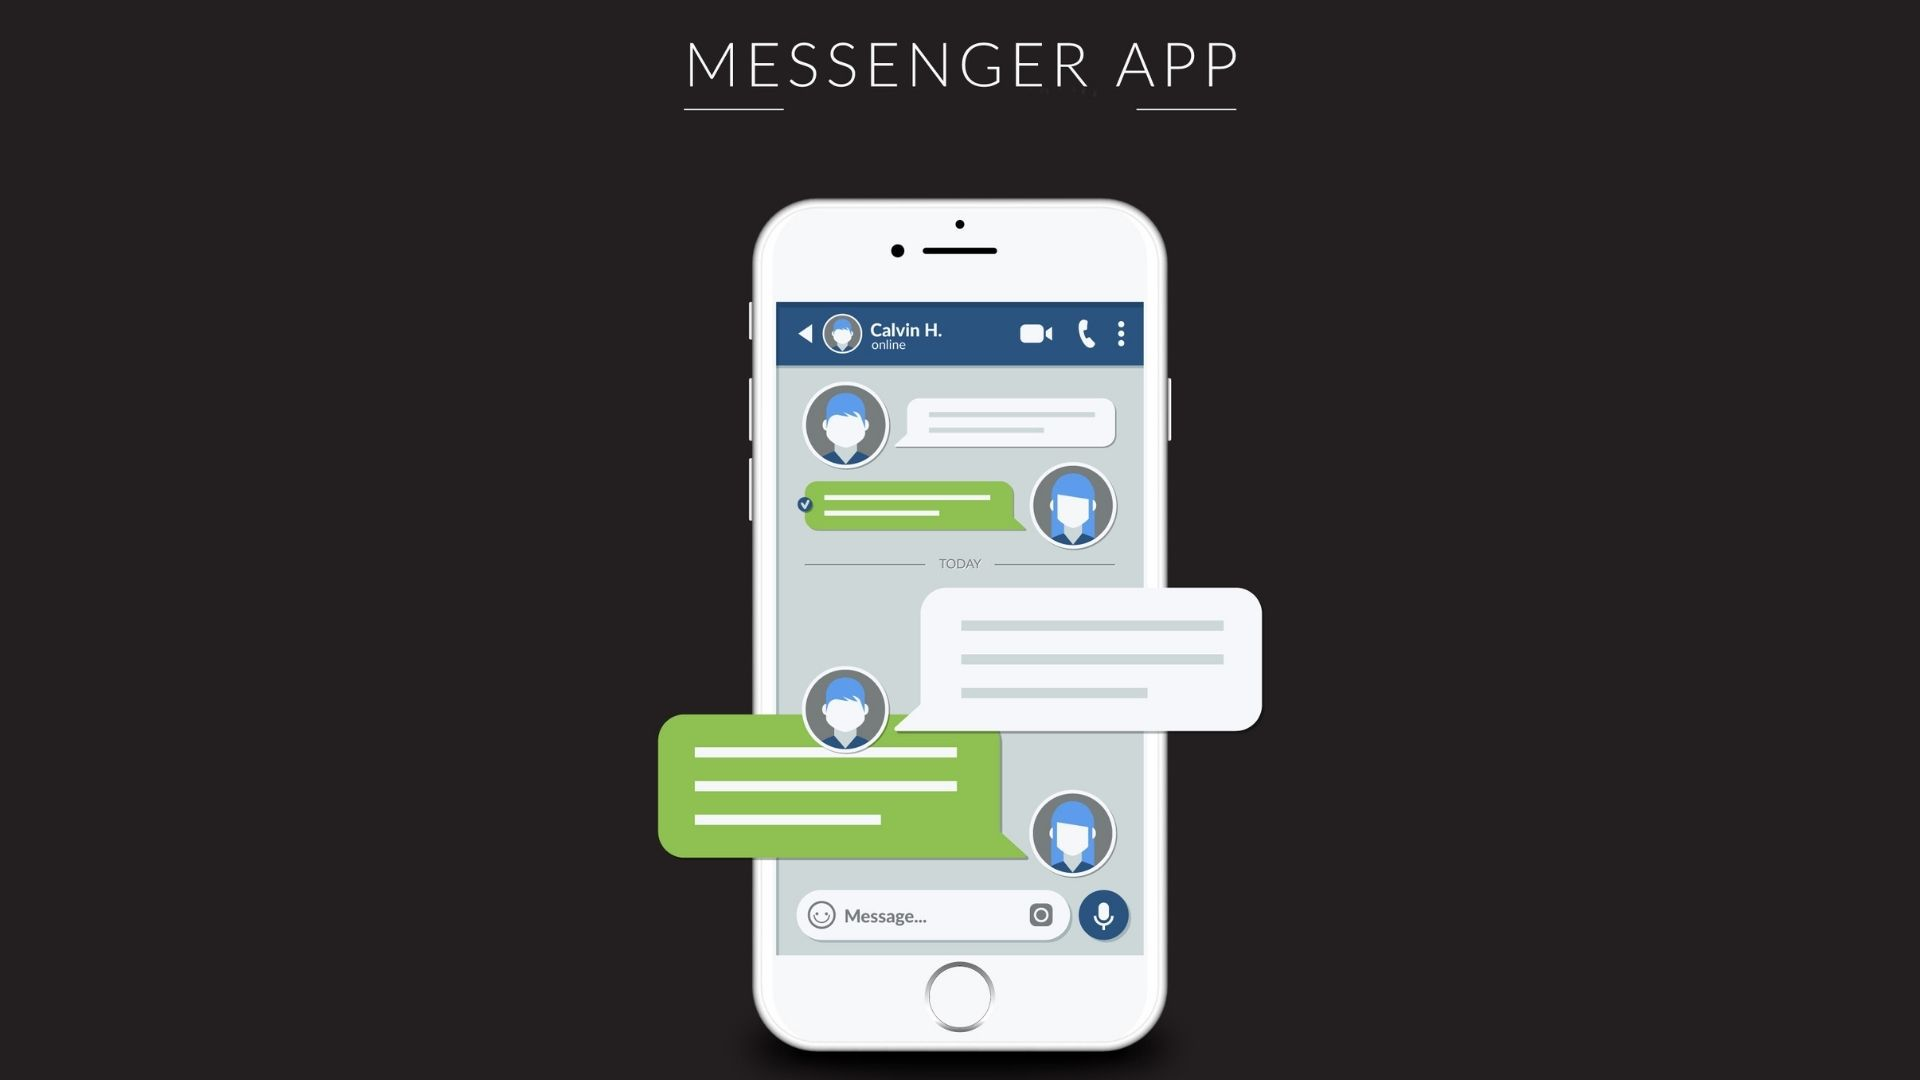 Top Global Mobile Messenger Apps in 2020